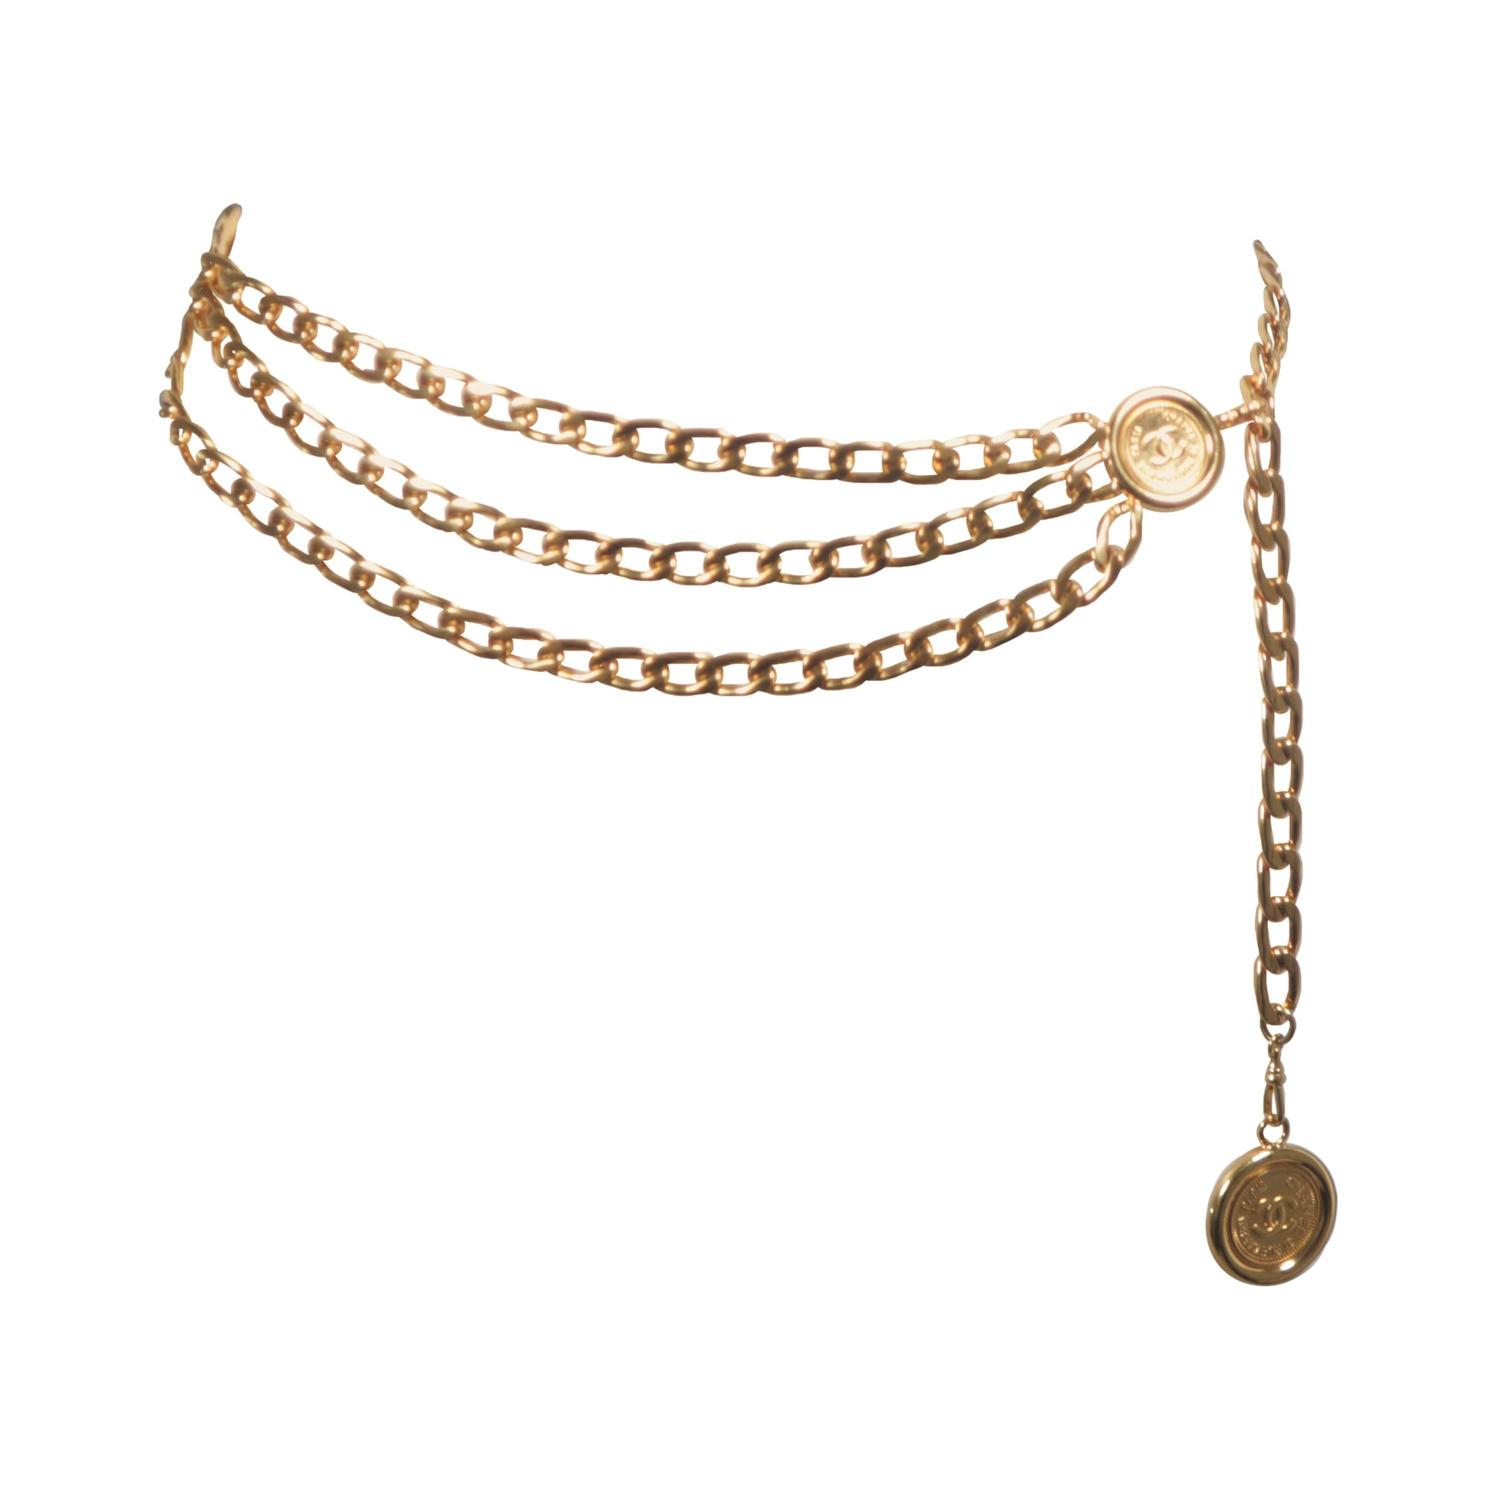 chanel belt. chanel gold tone triple strand detail chain link belt necklace open size at 1stdibs chanel